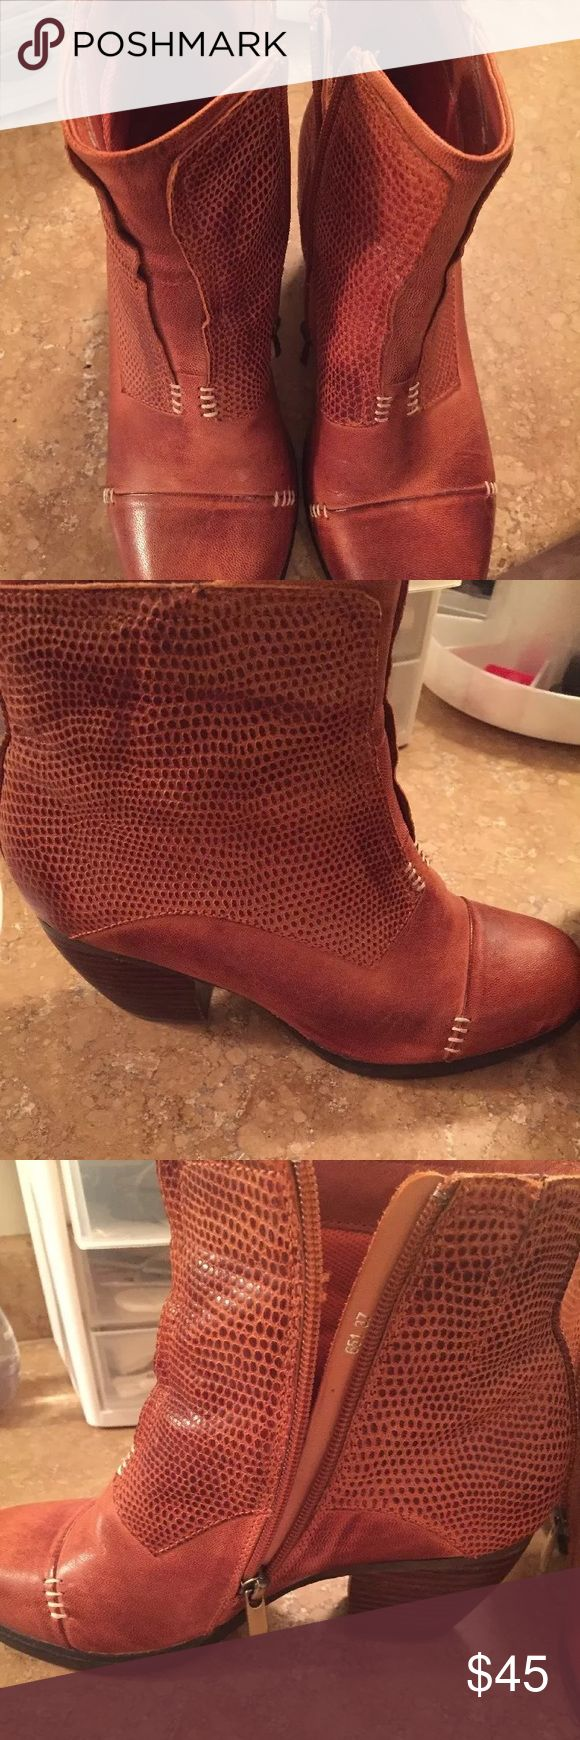 New Women's Antelope Brown leather Ankle Boots New Women's Antelope Brown leather Ankle Boots Size 37  Shoes never worn outside store  Were shelf models in the store antelope Shoes Ankle Boots & Booties